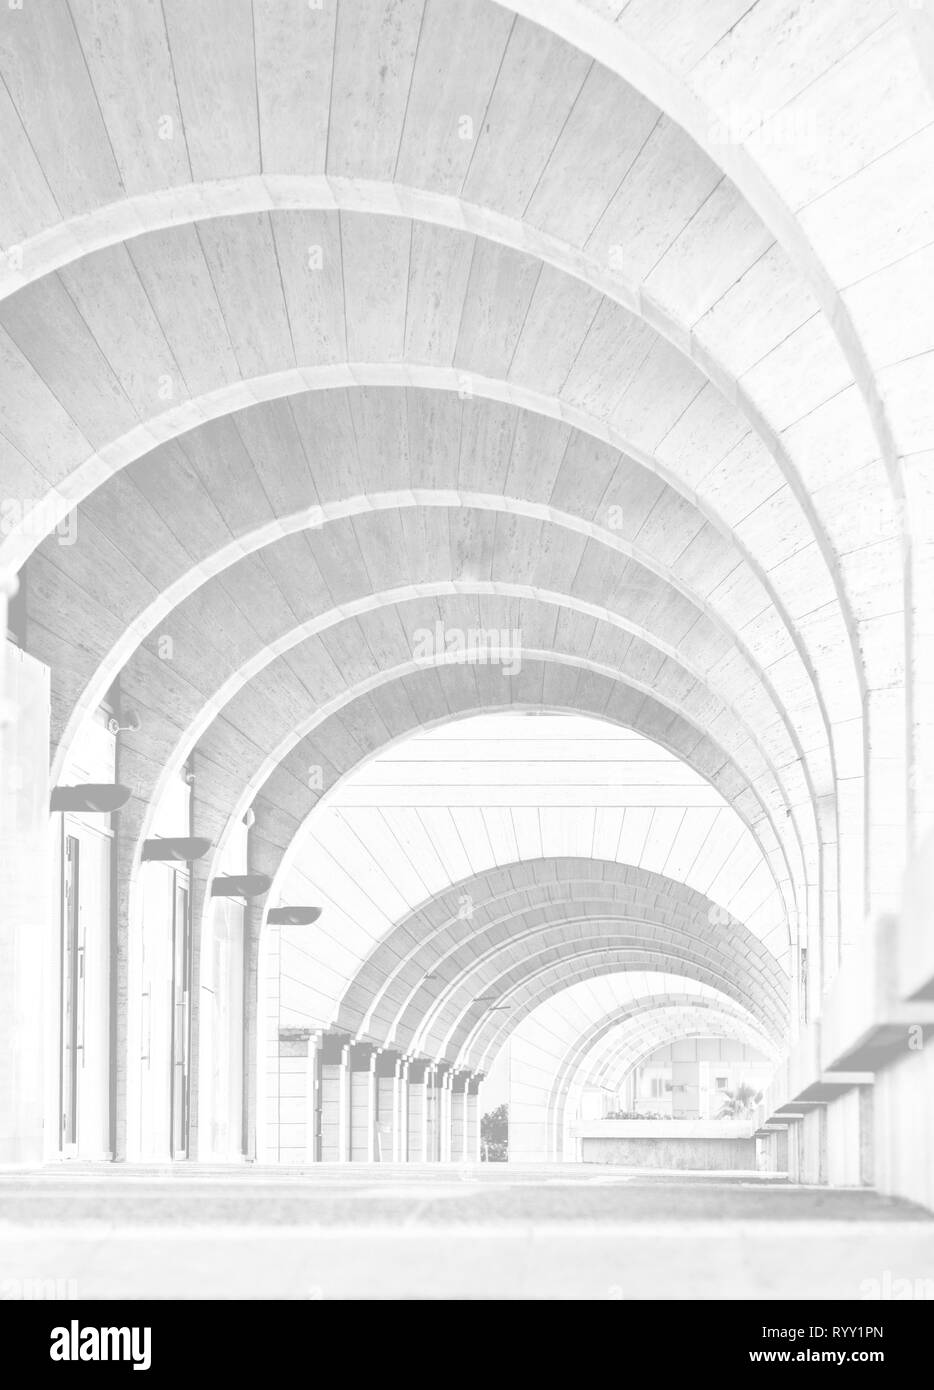 Tel Aviv, Israel - APRIL 28, 2018: Contemporary Architecture: Archway Arcade Modern building,architecture photography Stock Photo